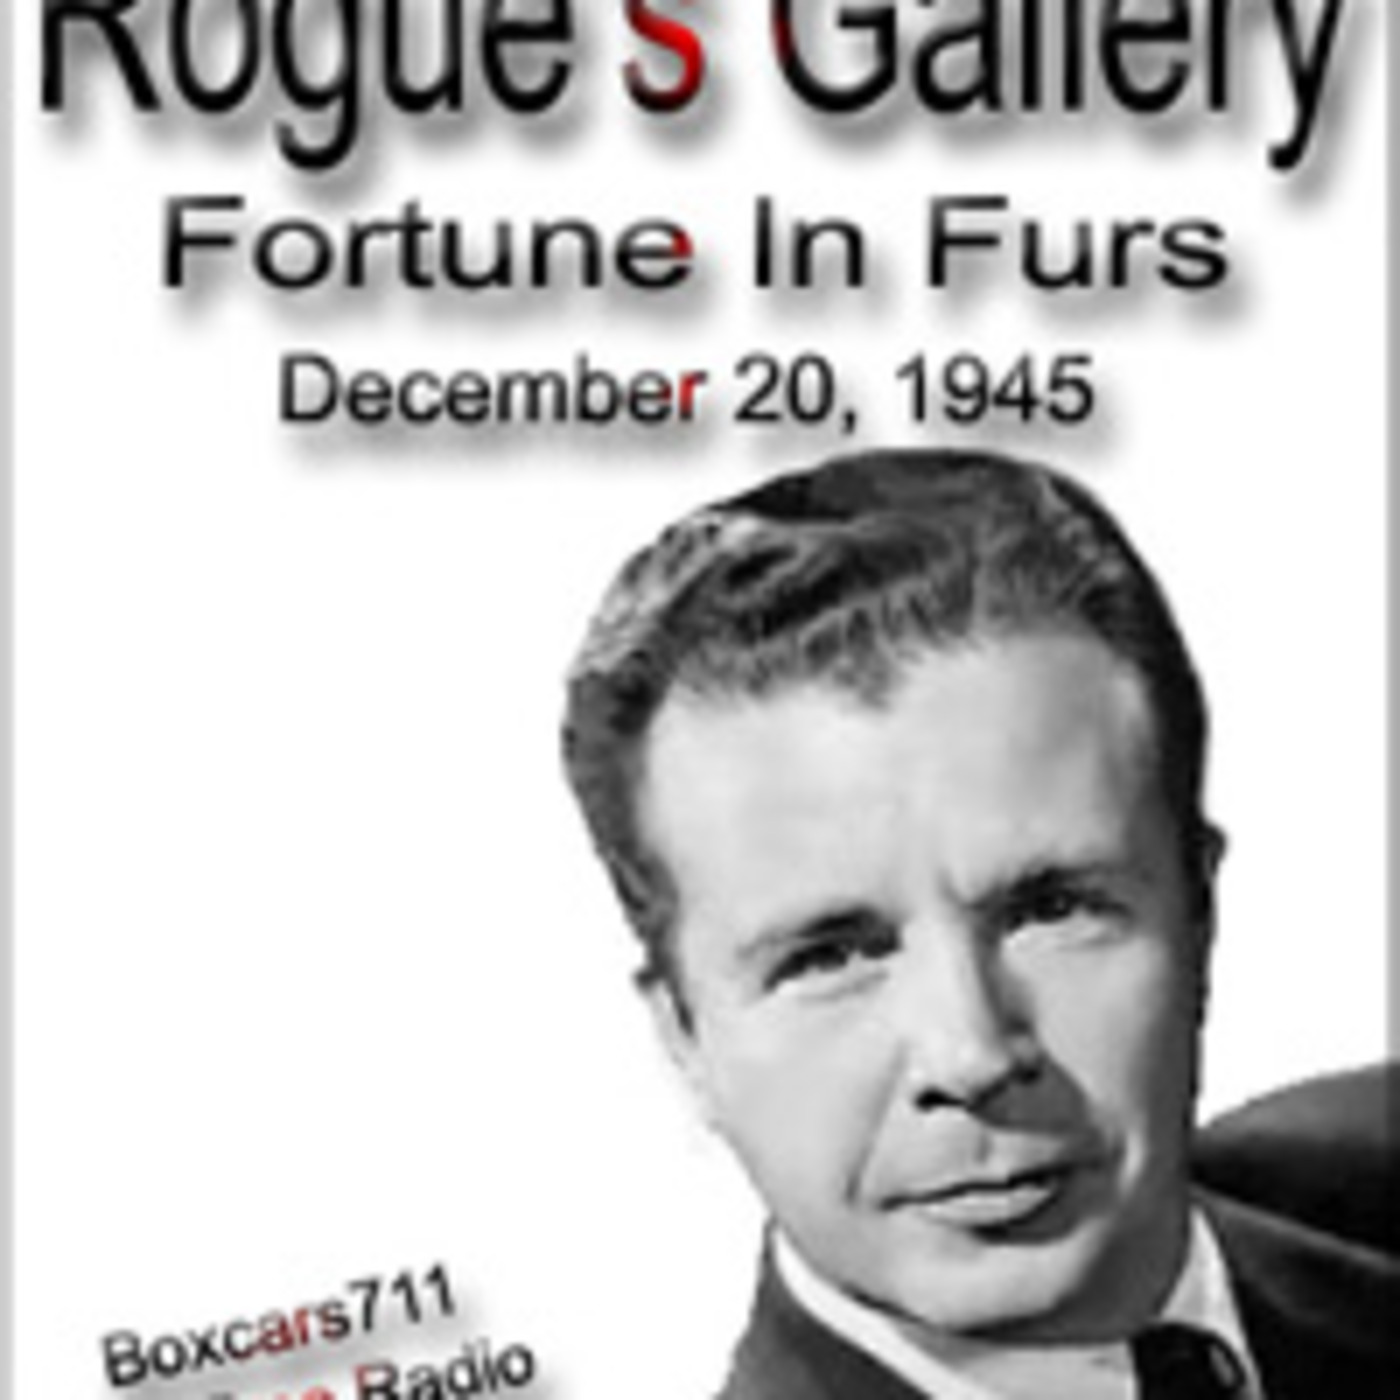 Rogue's Gallery - Fortune In Furs (12-20-45)